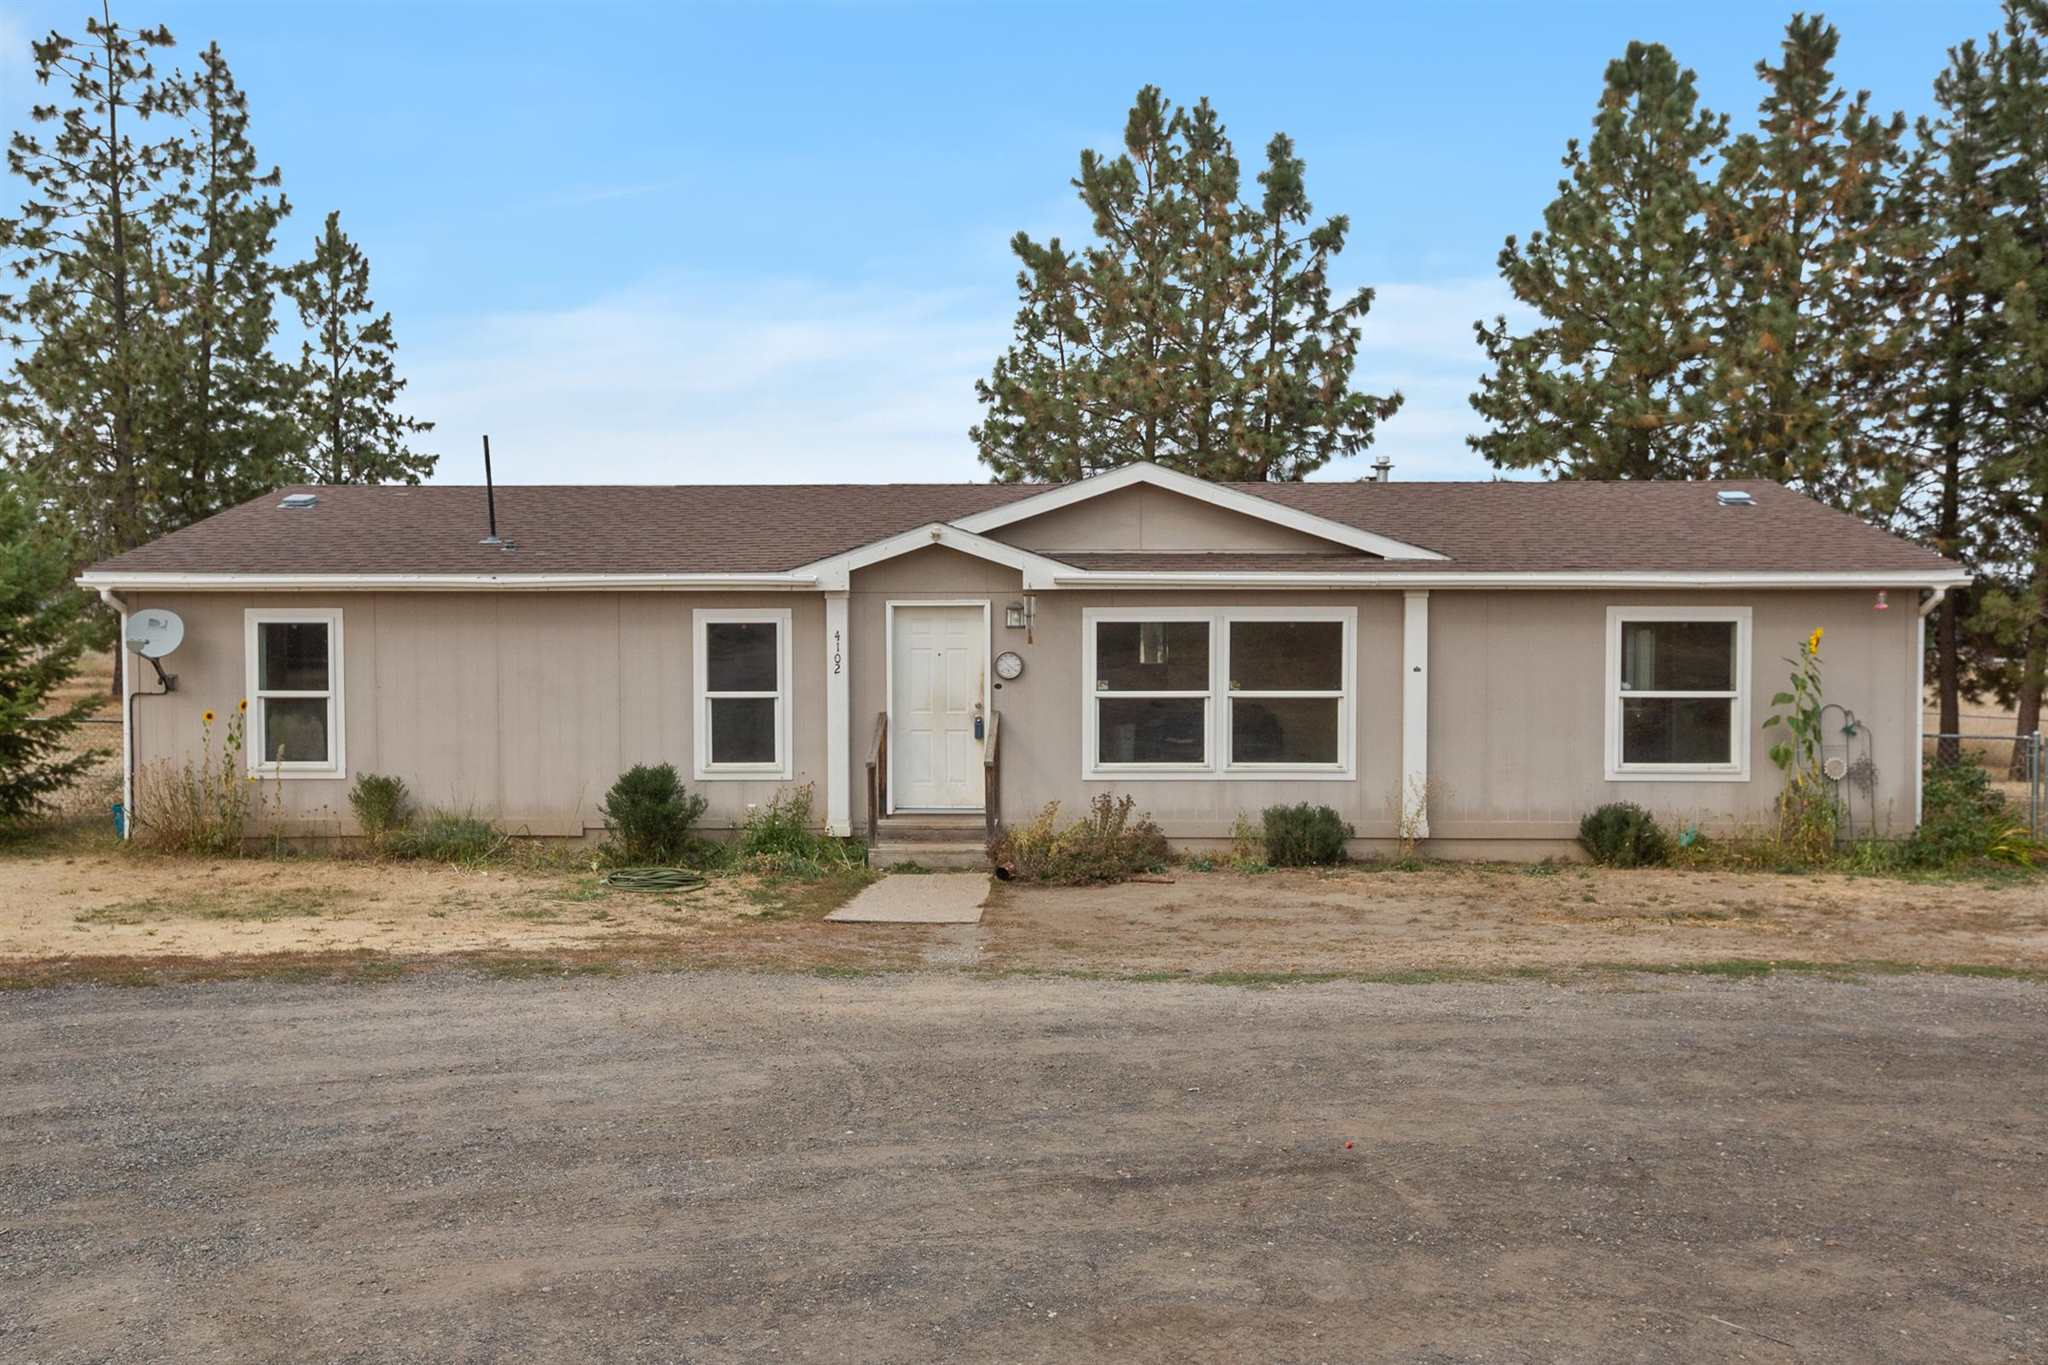 Location Location!!! This home is set back just off of HWY 395 just before the Deer Park Yokes. Featuring 3 bedrooms 2 bathrooms and 2 Livingroom areas. A 30X30 Shop with power and a loft. Come make this home yours. New paint and new flooring will revitalize the home and make it feel like your own. *Ask me how you can save 1% off of closing costs with your offer**